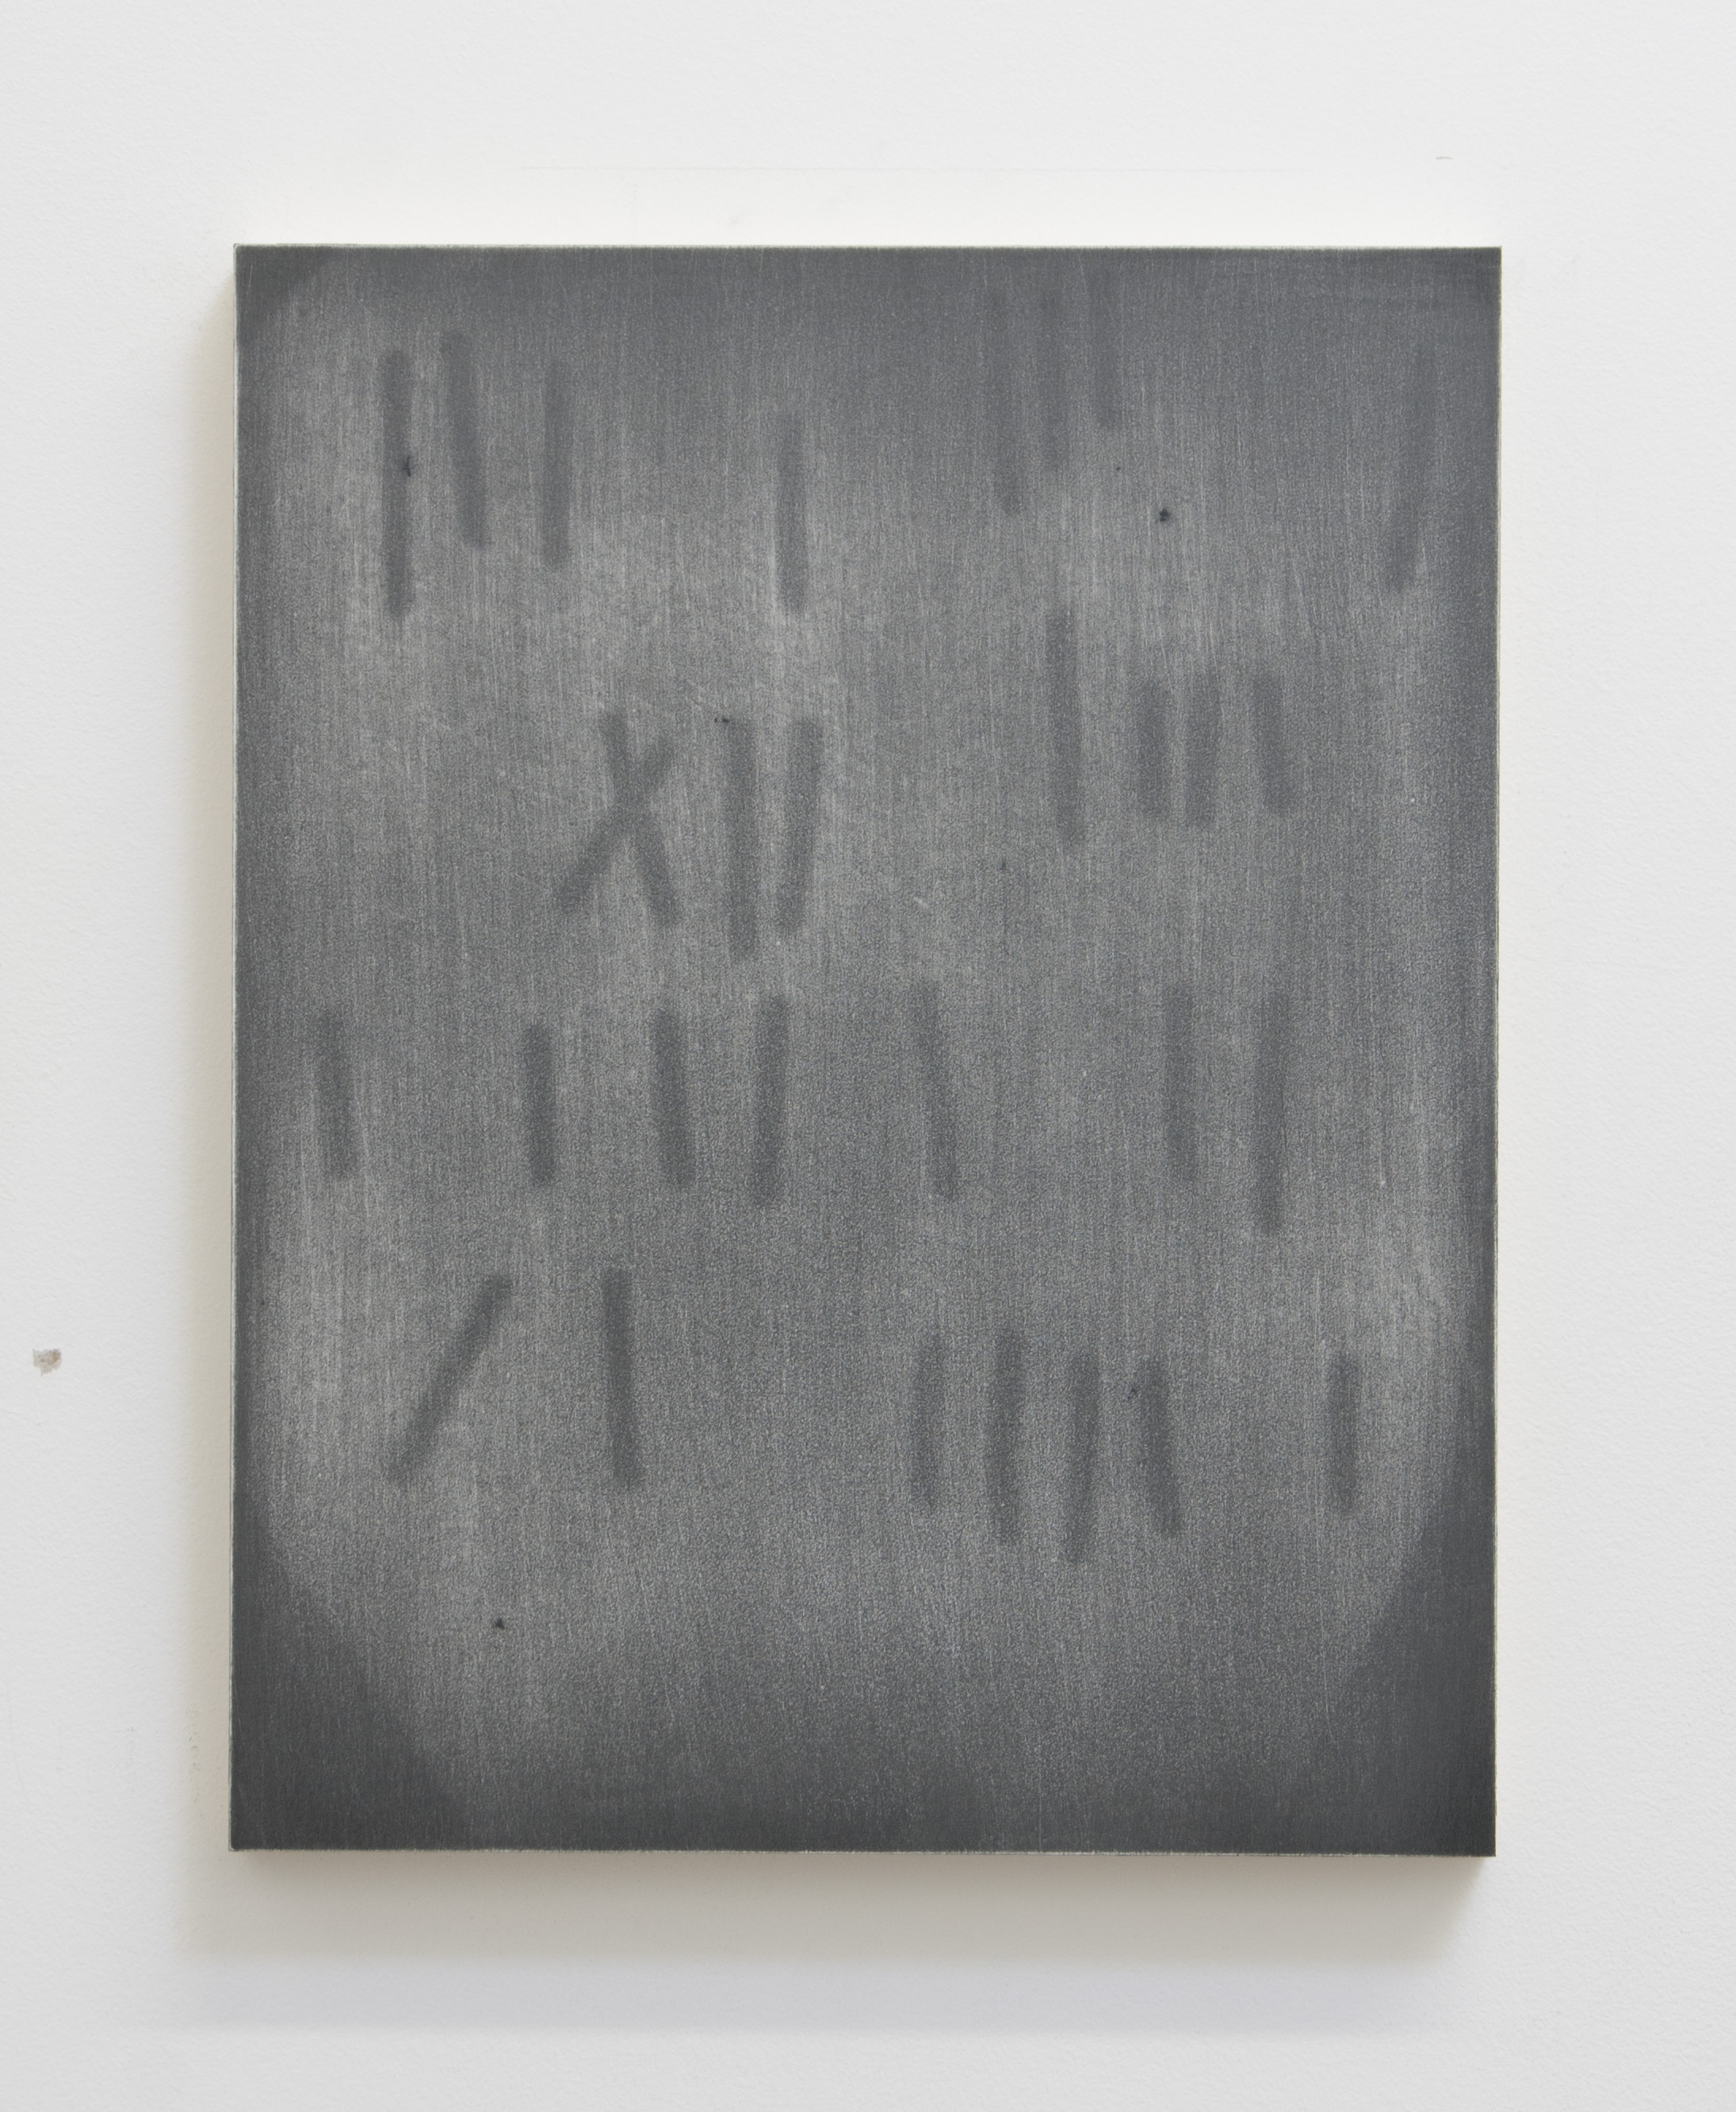 Thirty, 2015  Acrylic on panel, 14 x 11 inches